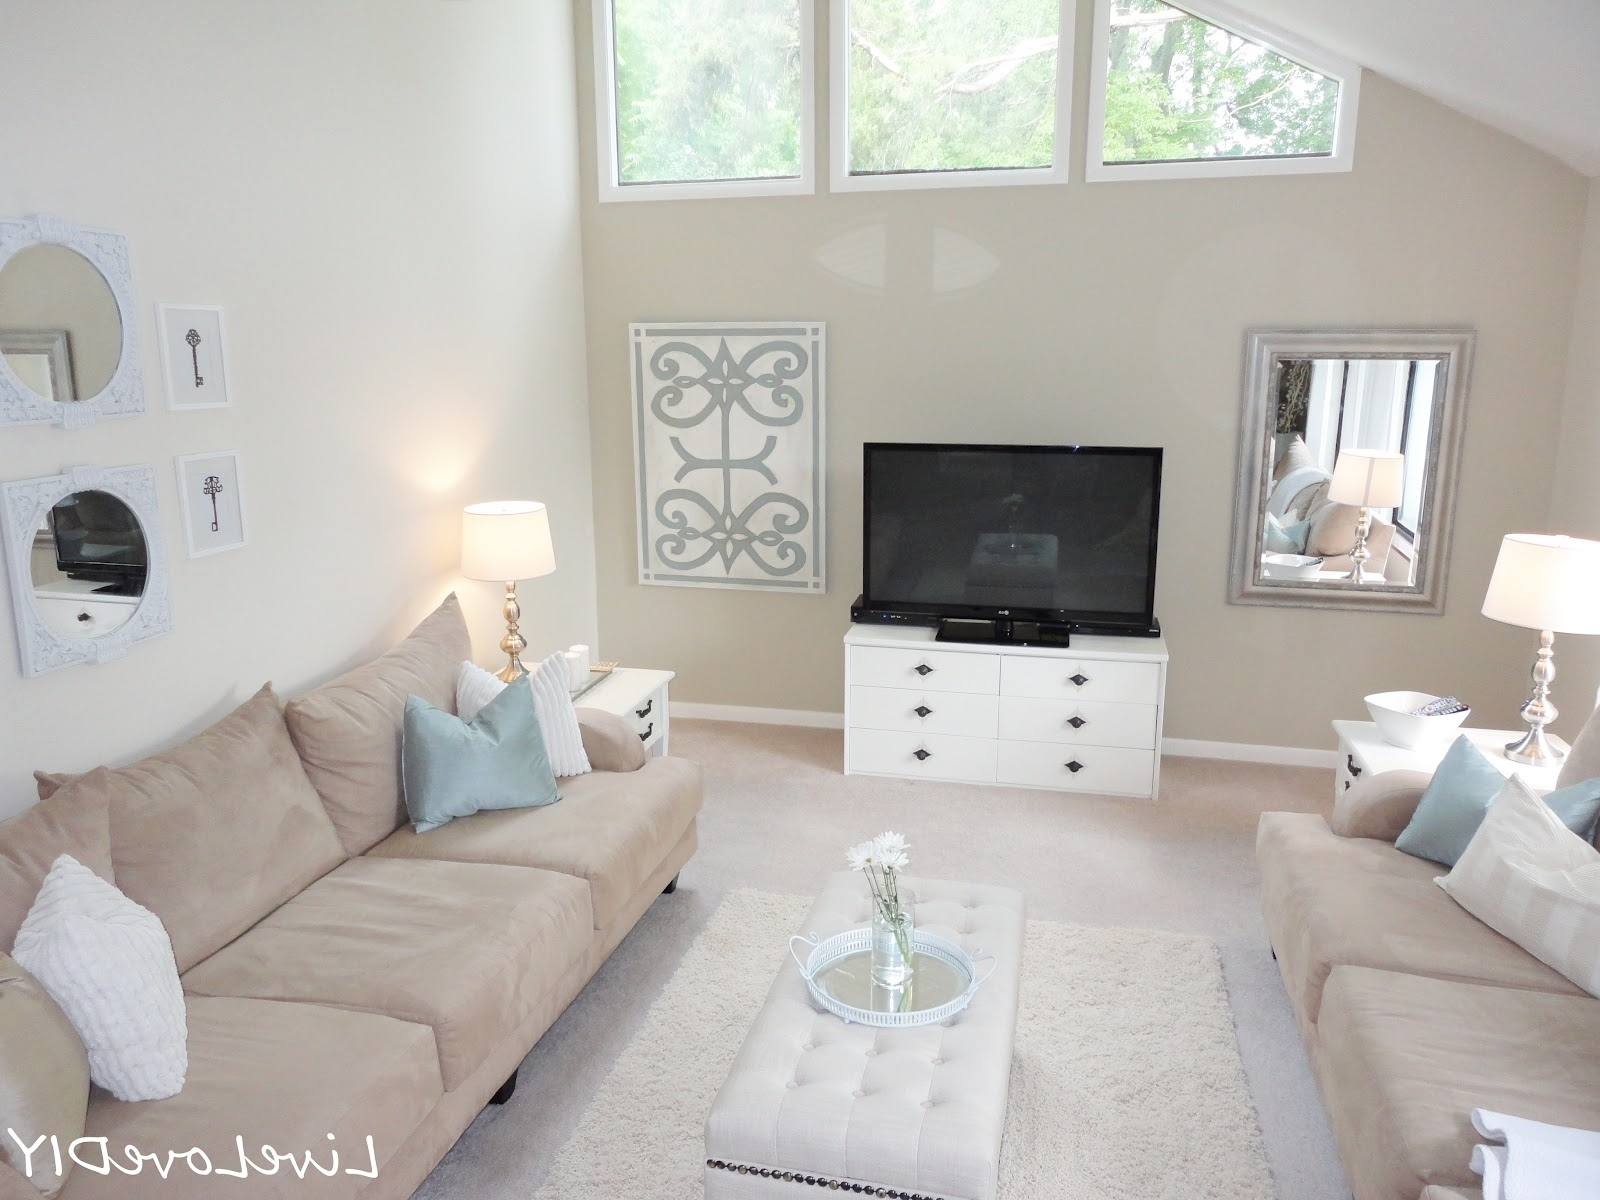 Livelovediy: Living Room Reveal & Diy Wall Art Pertaining To Recent Neutral Color Wall Accents (View 10 of 15)